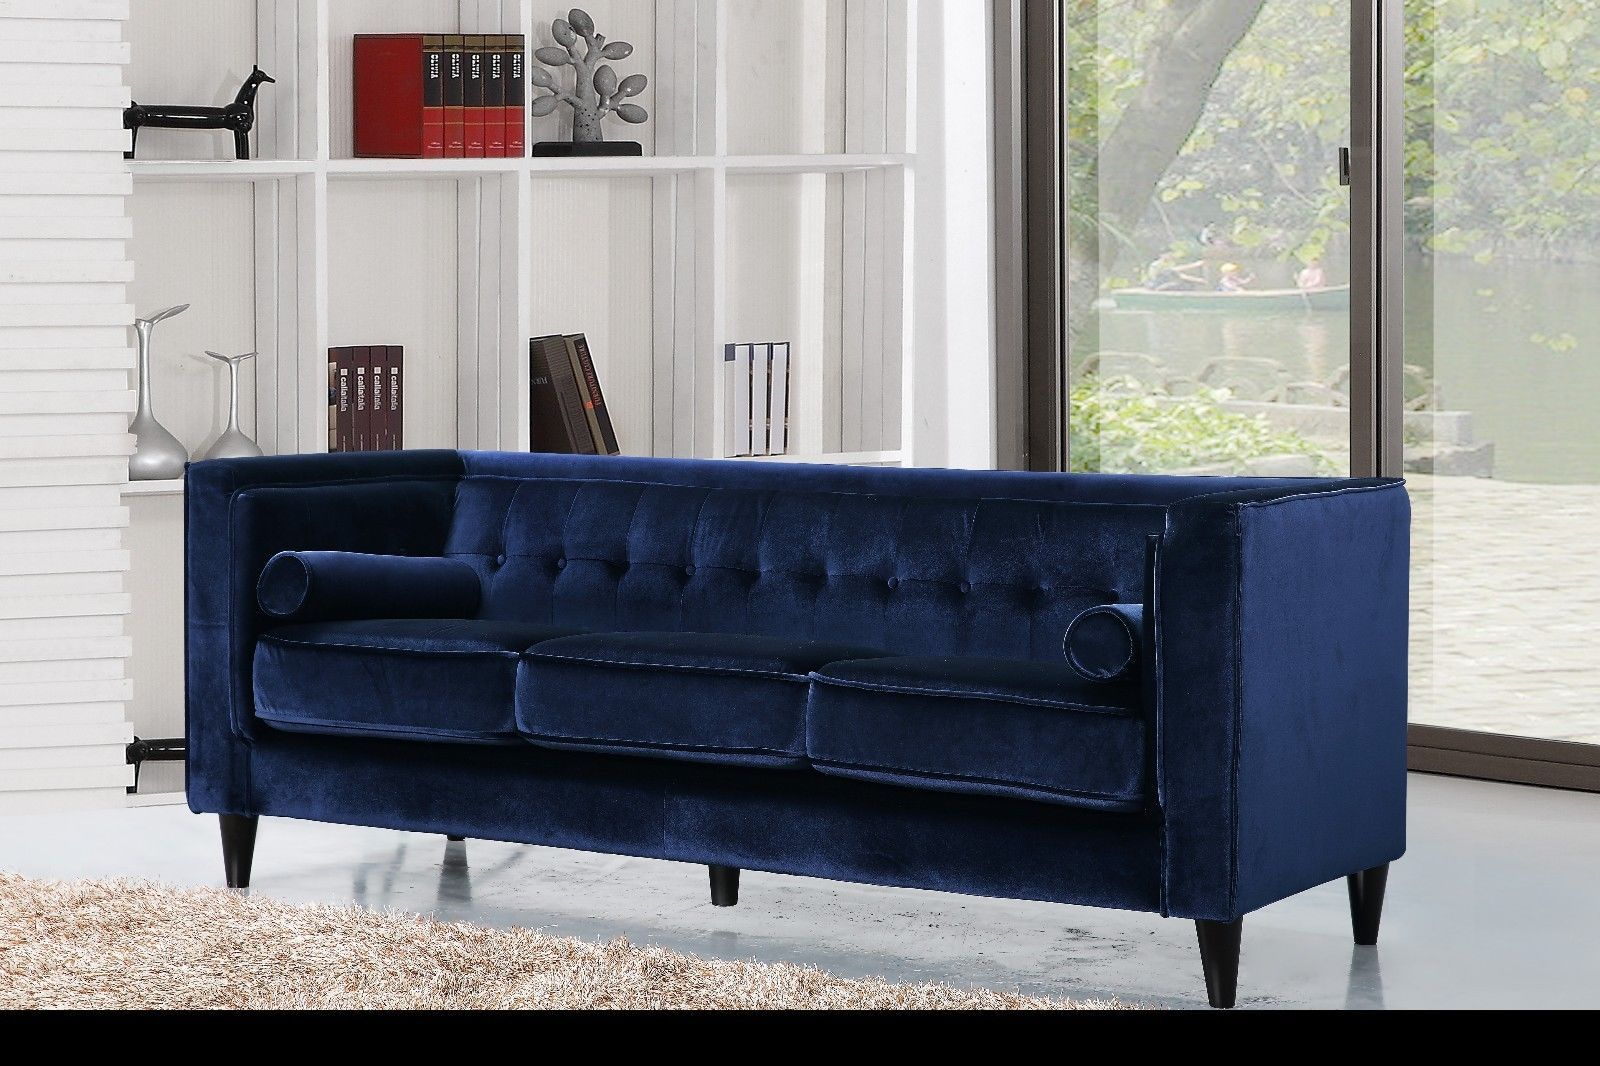 Meridian 642 Taylor Living Room Set 2pcs in Navy Velvet Contemporary Style